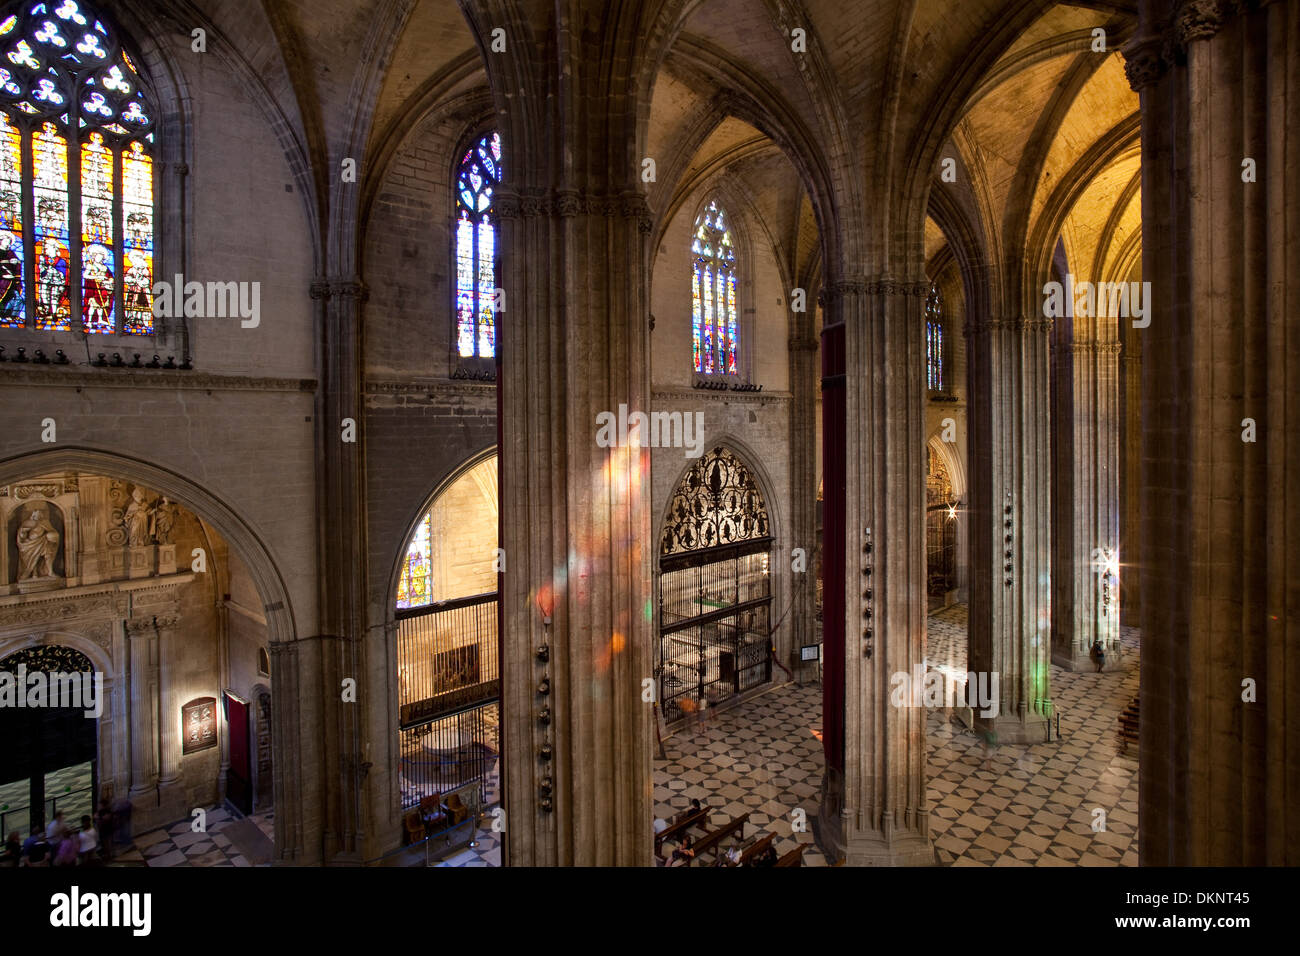 Interior of the Cathedral of Seville. Seville, Andalusia, Spain Stock Photo